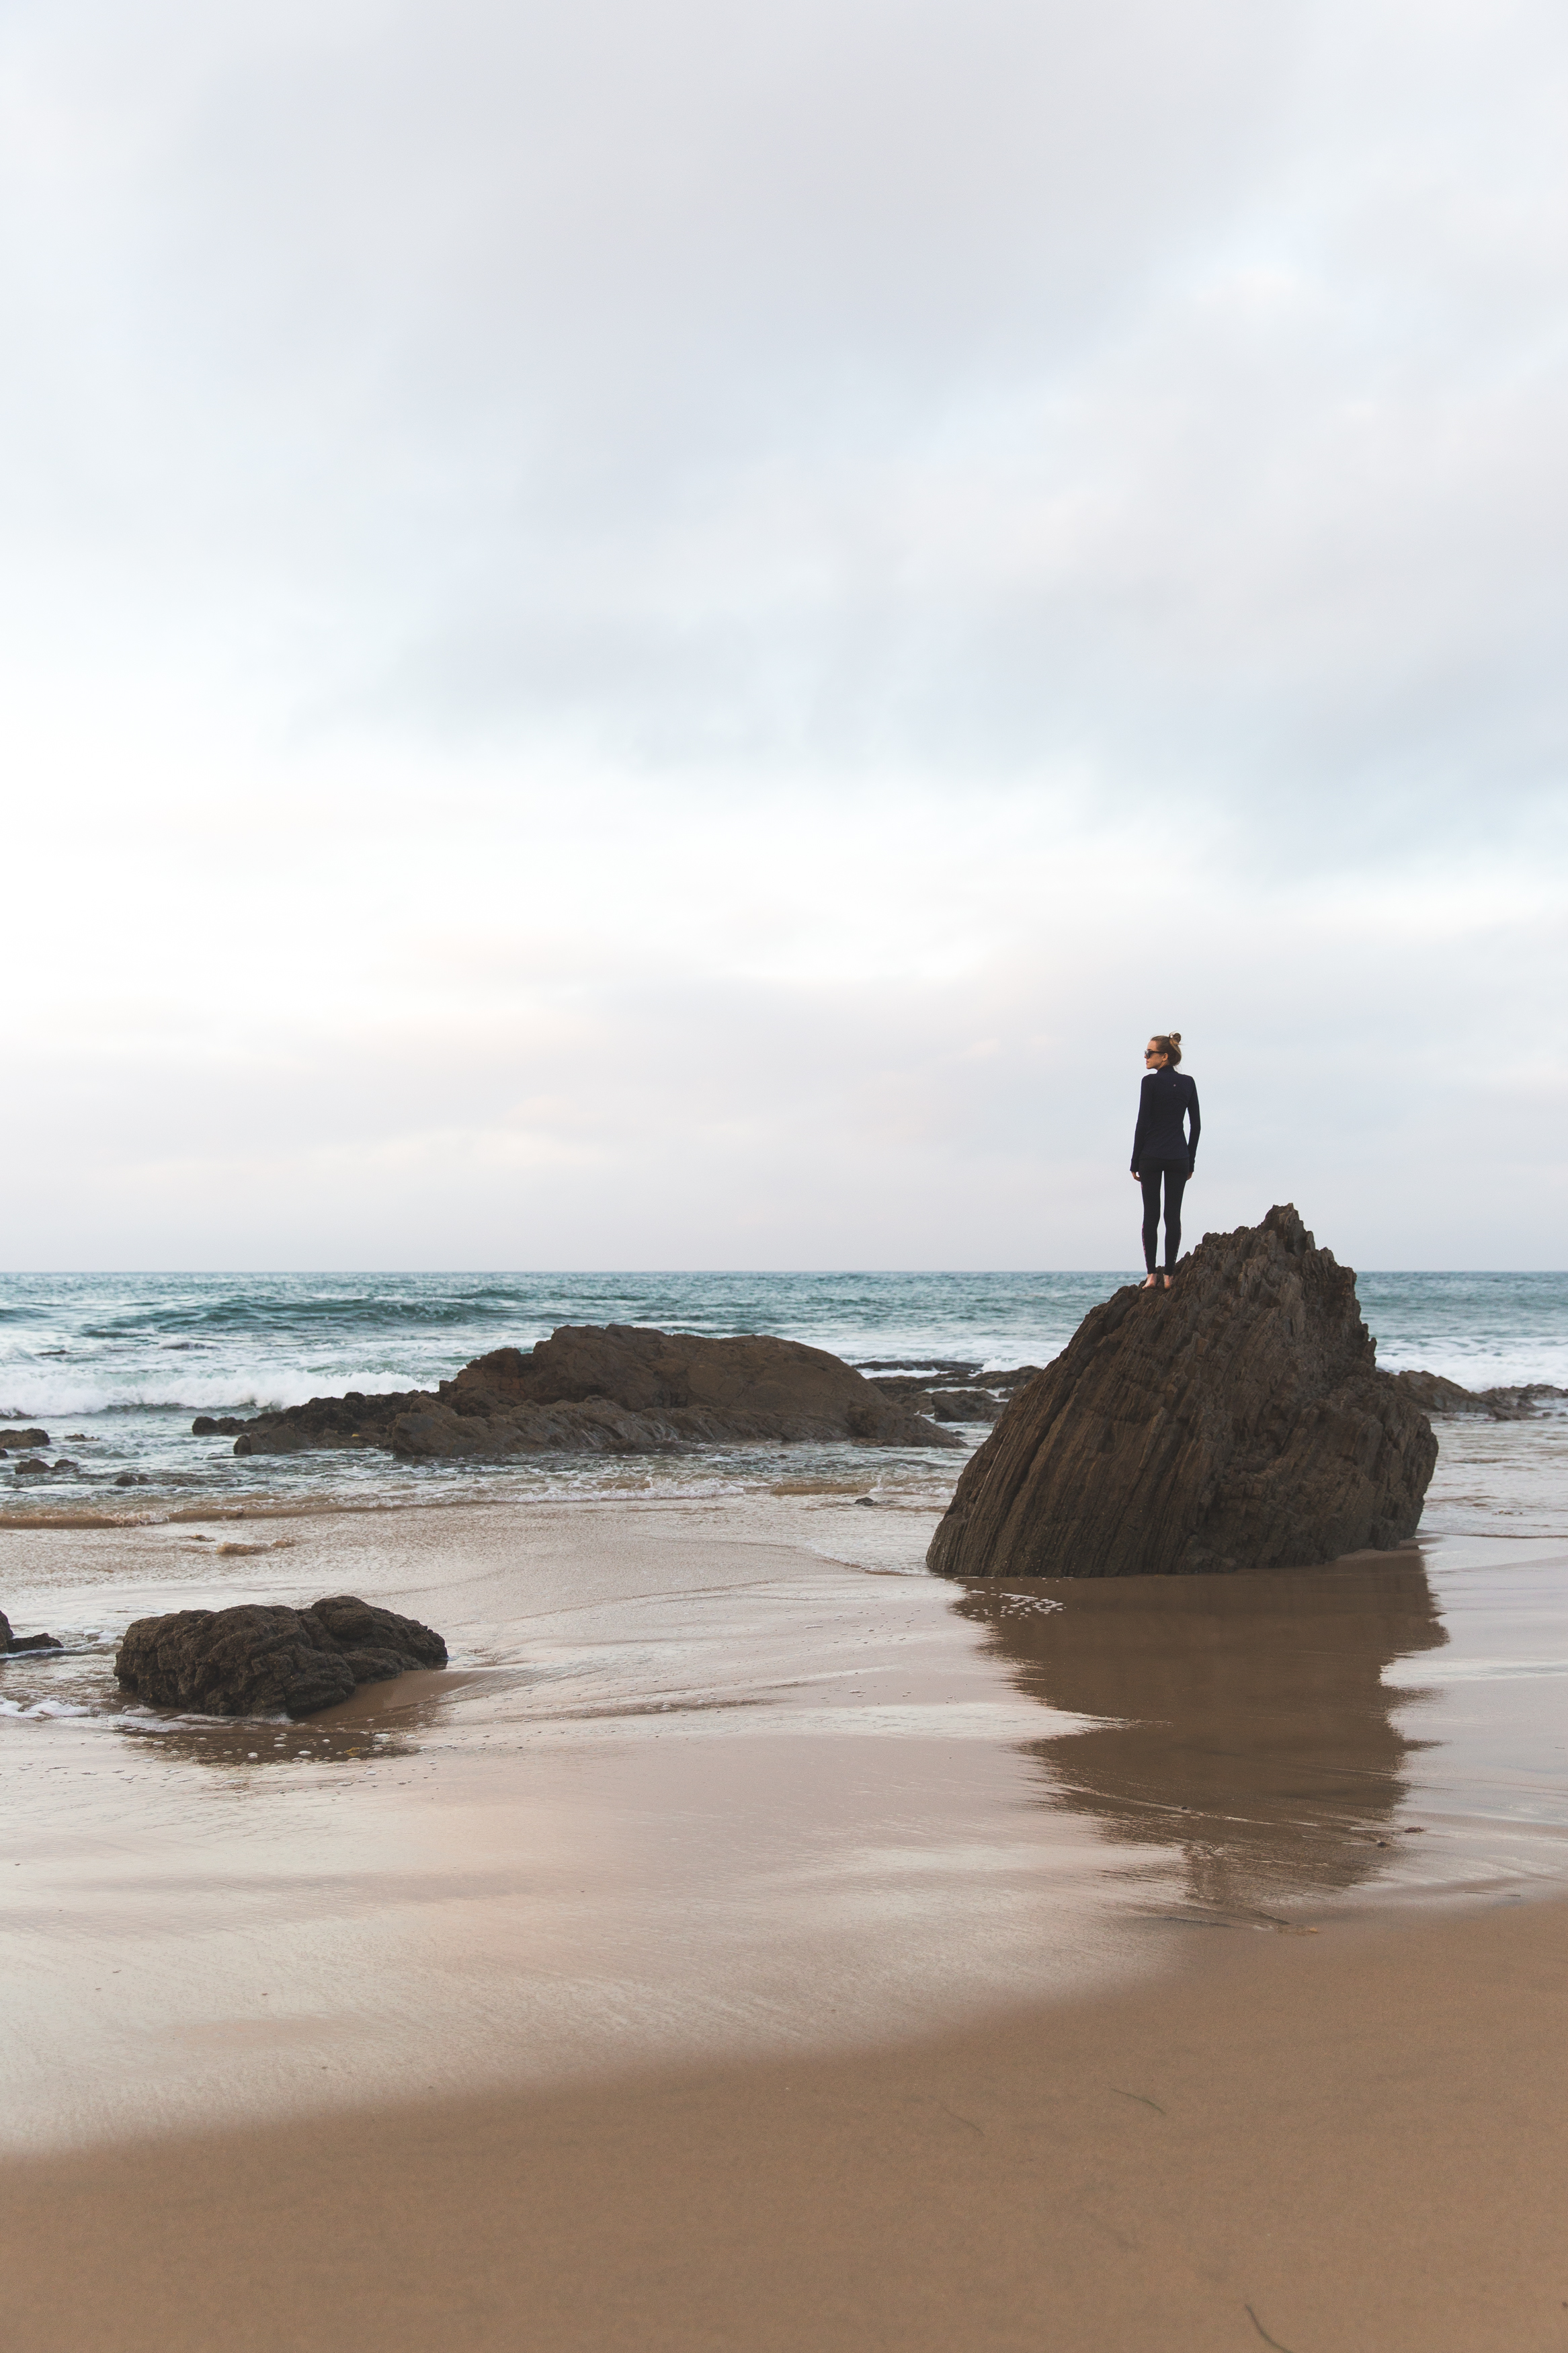 Stay_Driven_Crystal_Cove_Landscapes-26.jpg